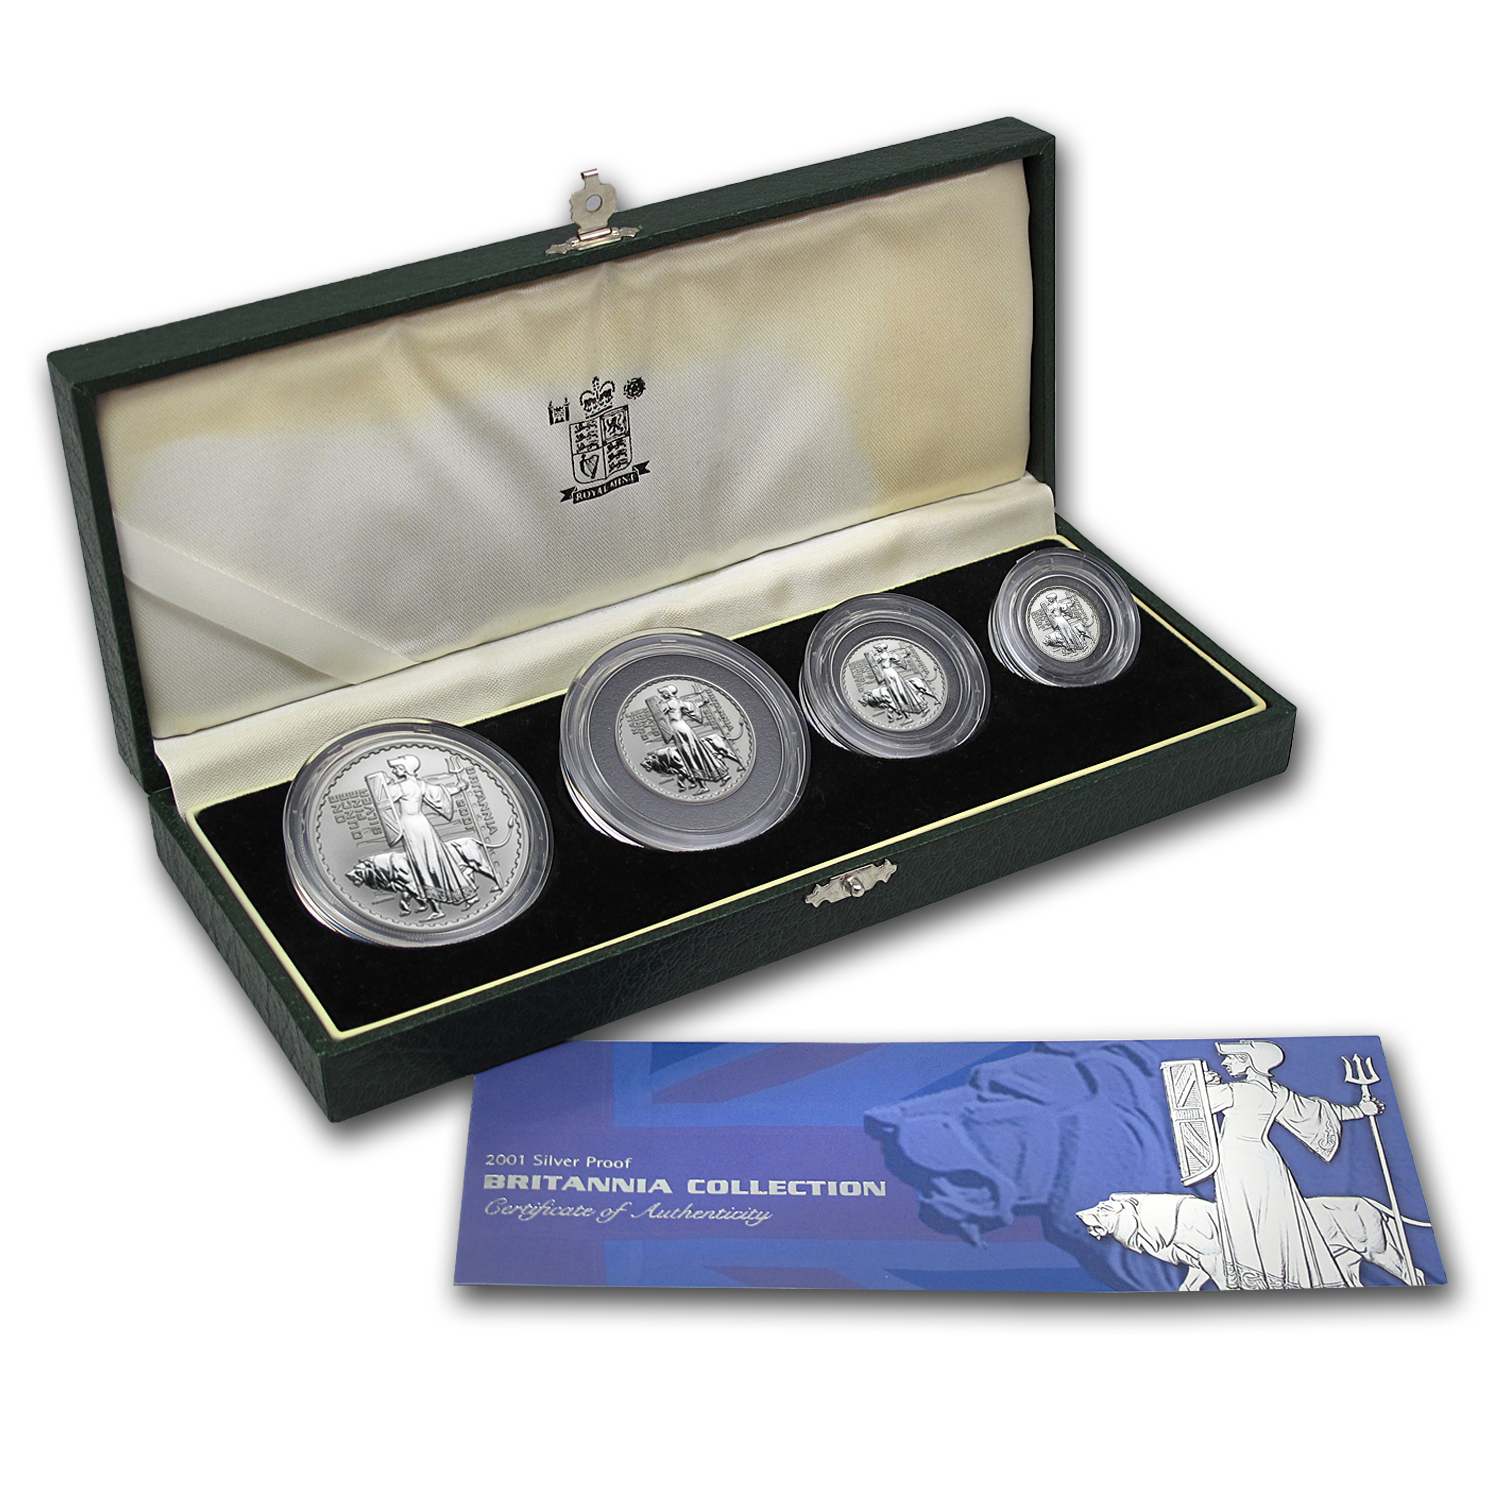 2001 GB 4-Coin Silver Britannia Proof Set (w/Box & COA)